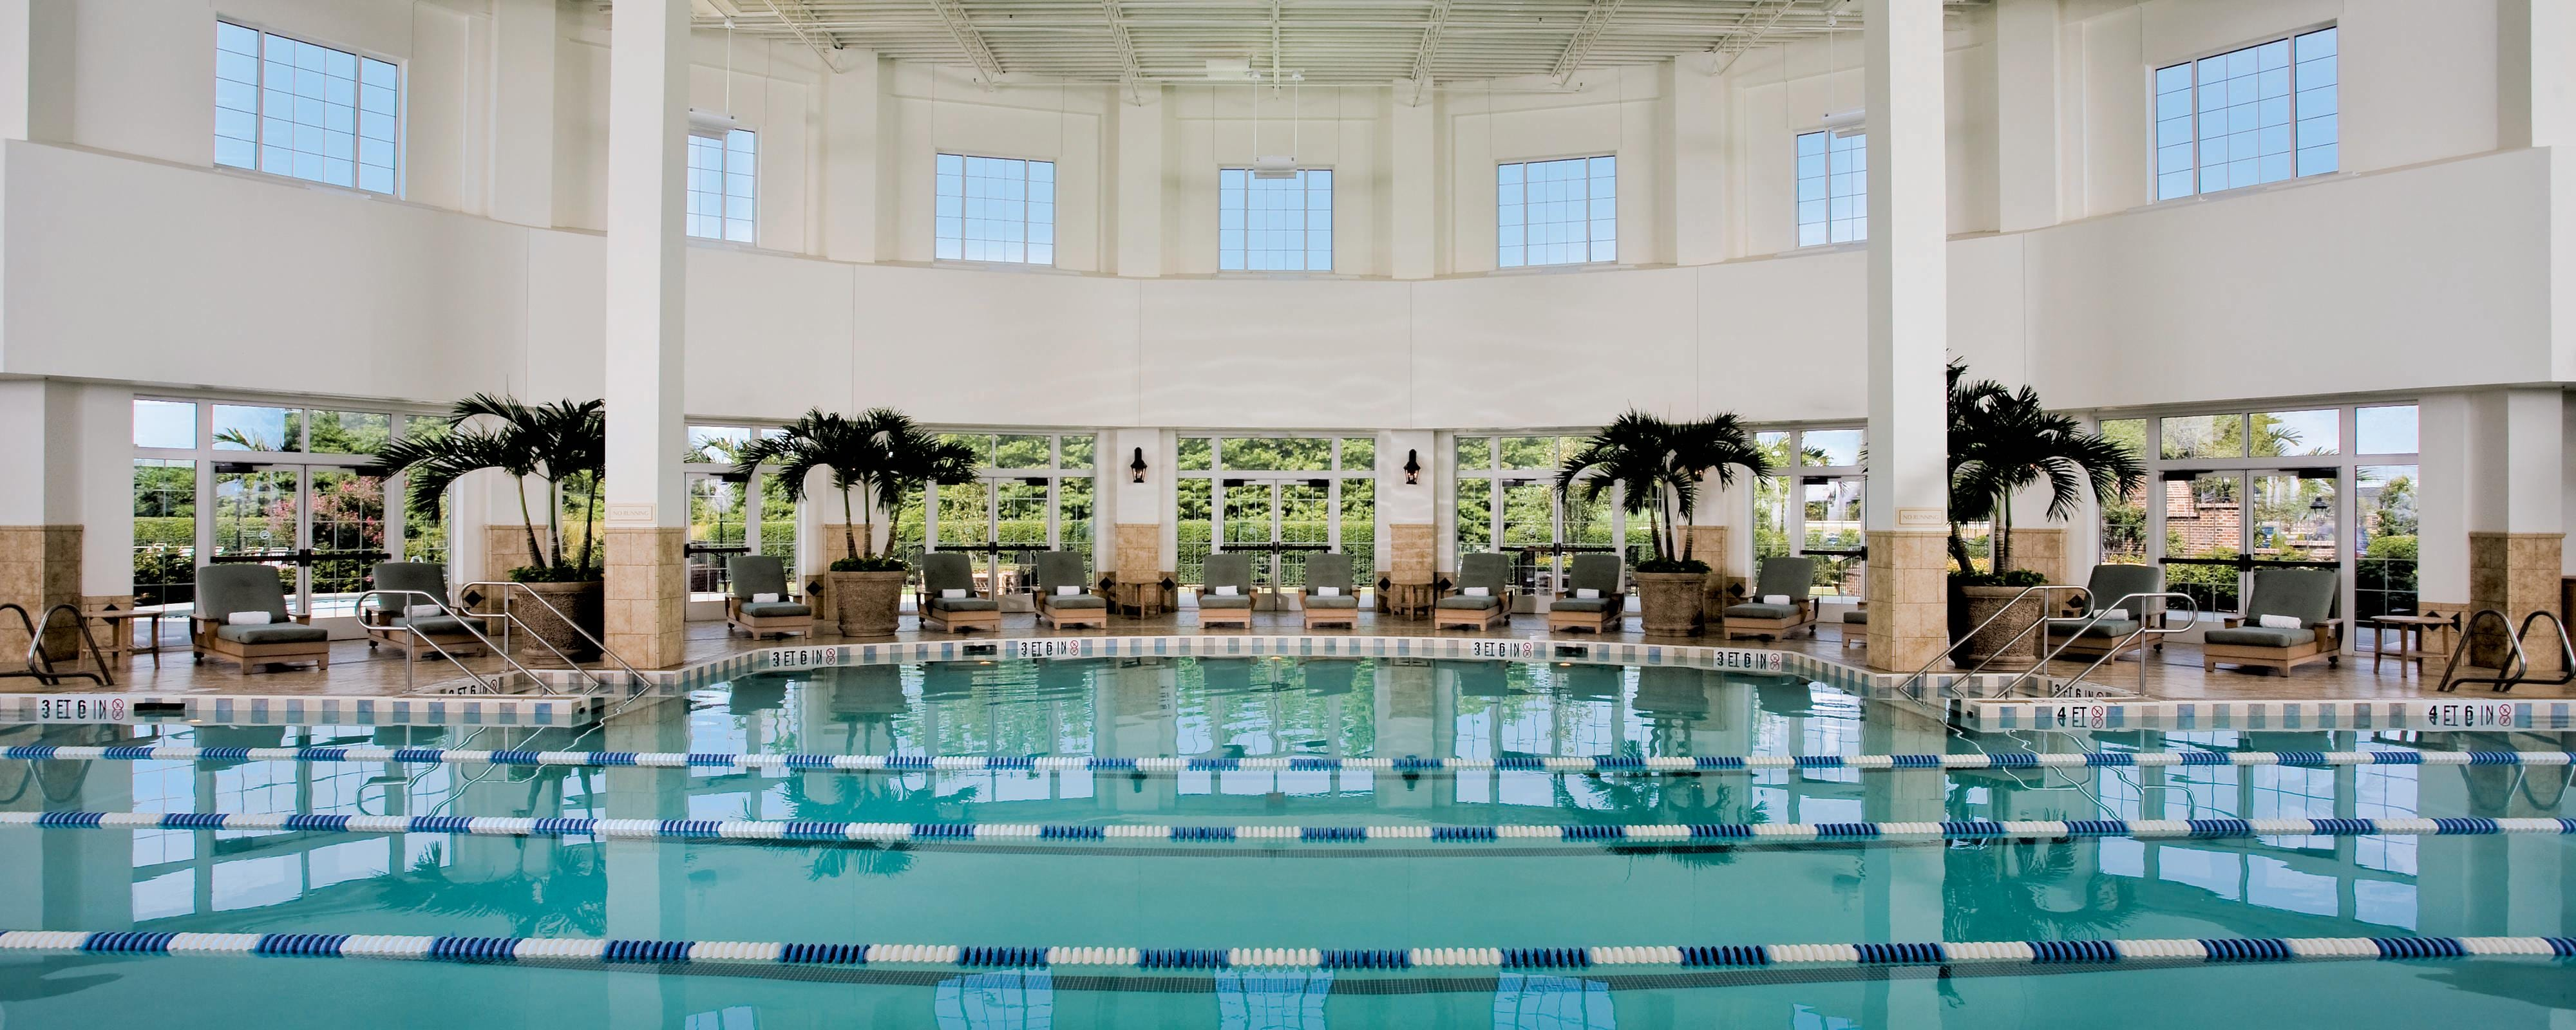 Opryland Hotels With Indoor Pool Gaylord Hotel Nashville - 15 of the best indoor hotel pools in the world